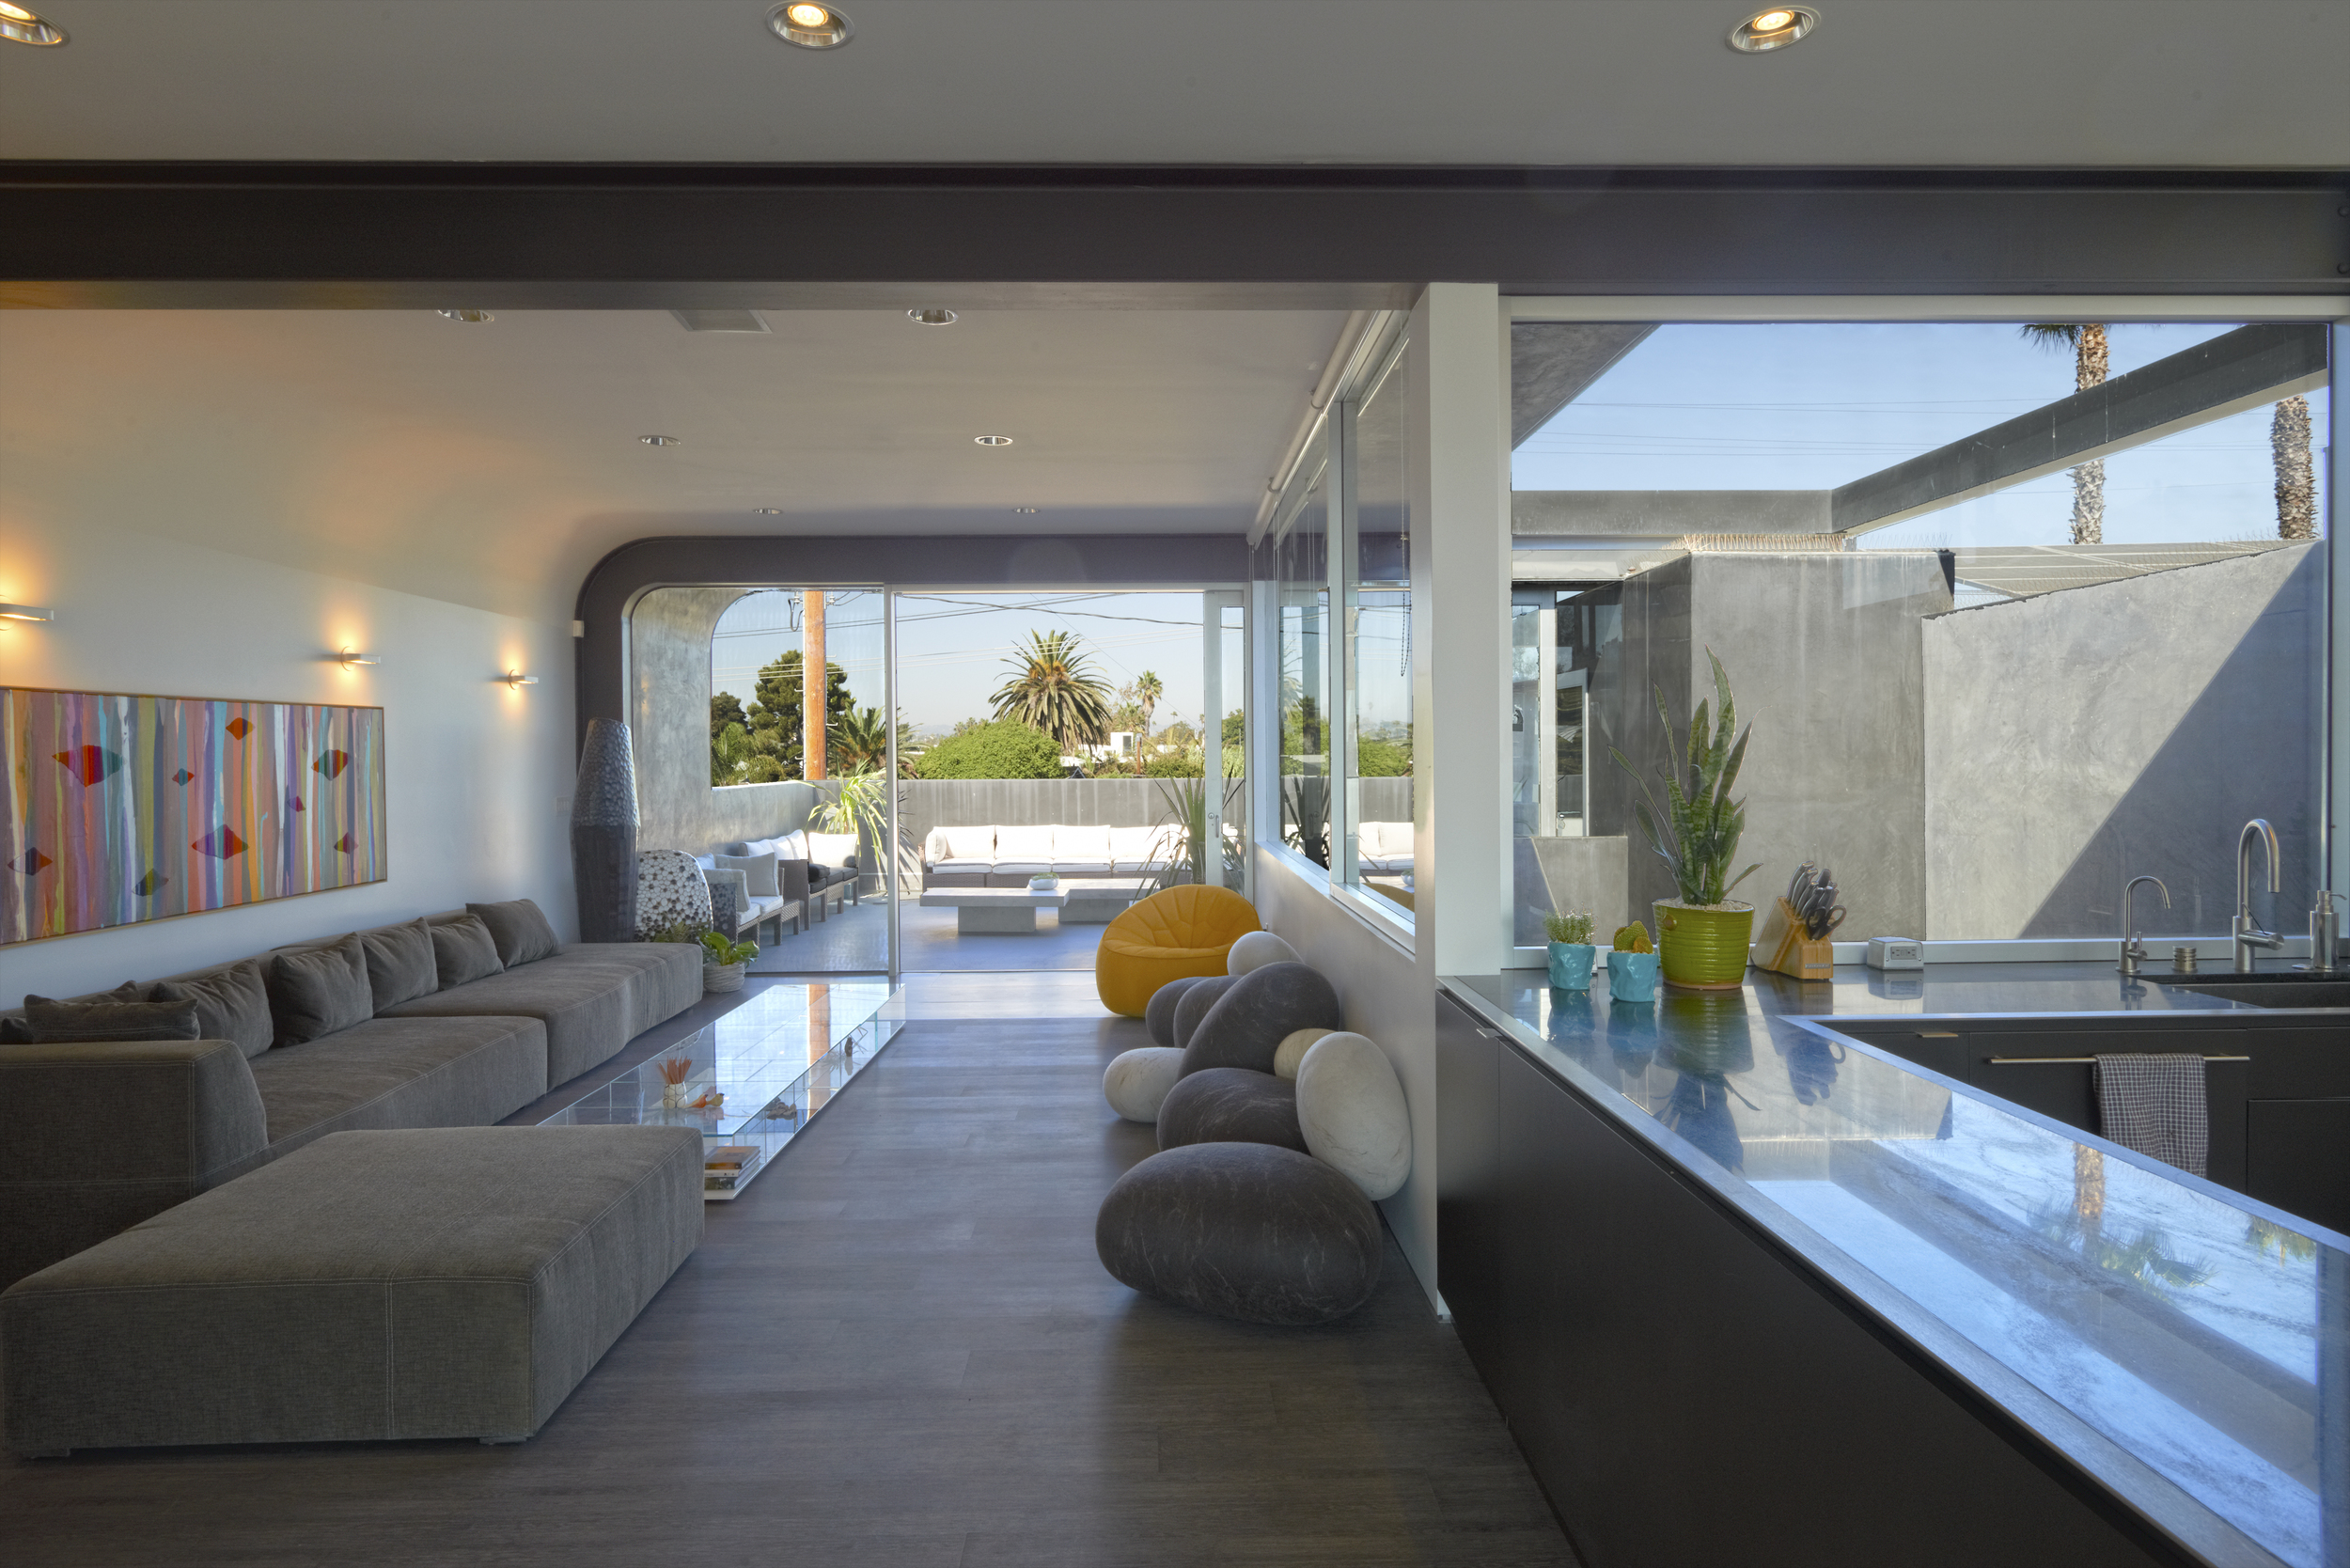 A chic seating area in the multi-level space.